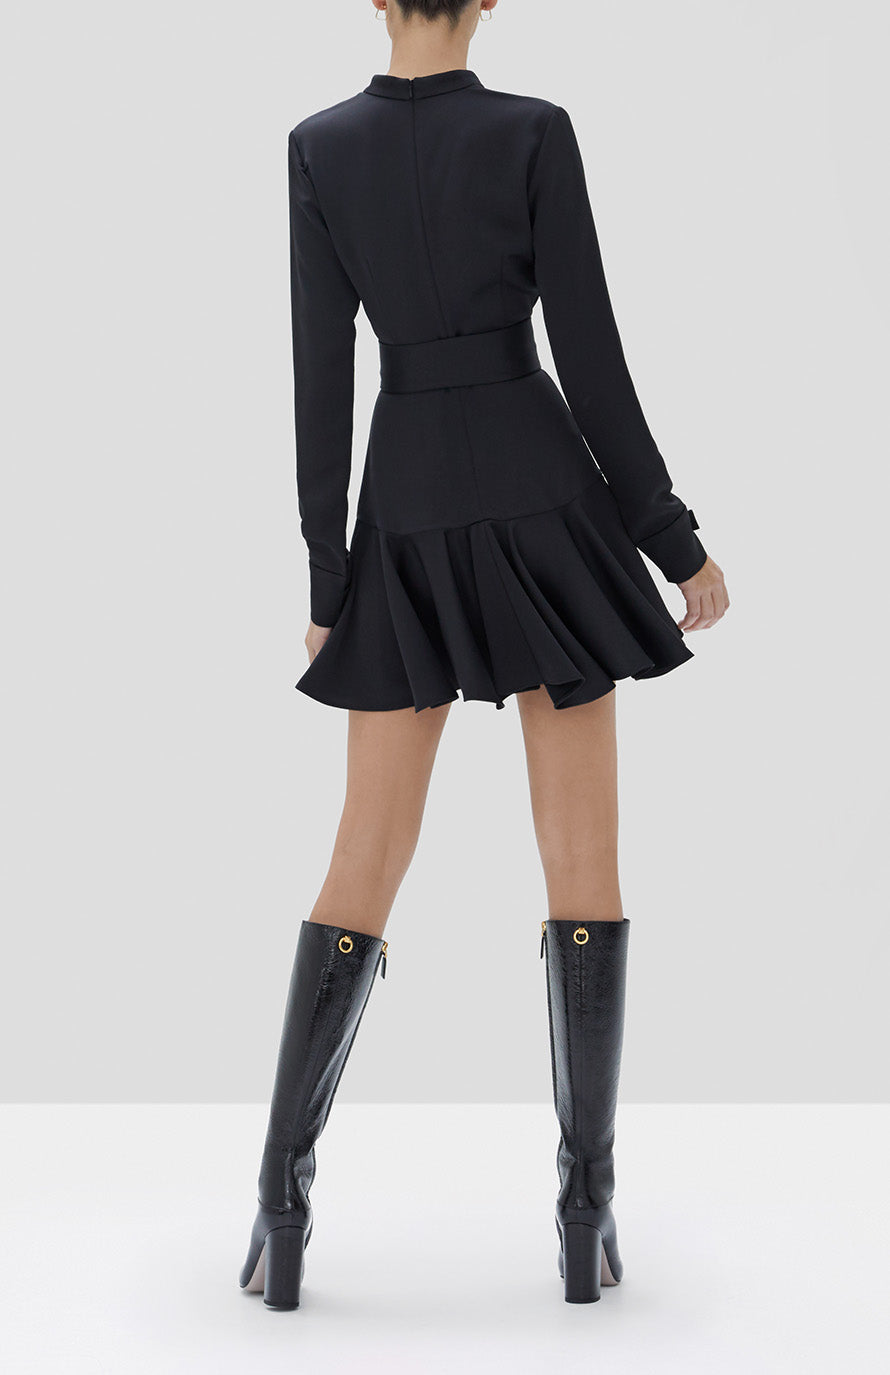 ALEXIS Meredith Dress in Black - Rear View